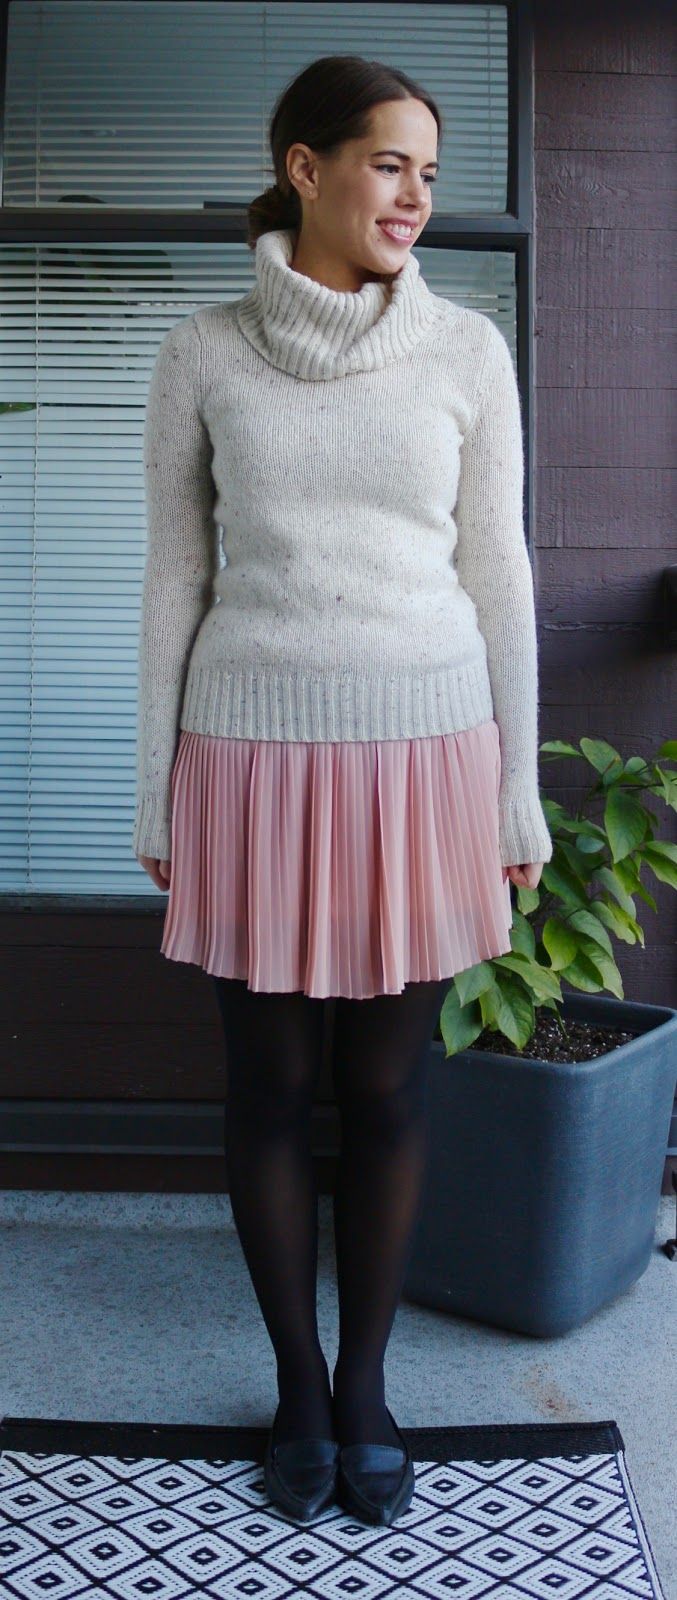 Jules in Flats - Pleated Mini Skirt and Turtleneck Sweater for Work